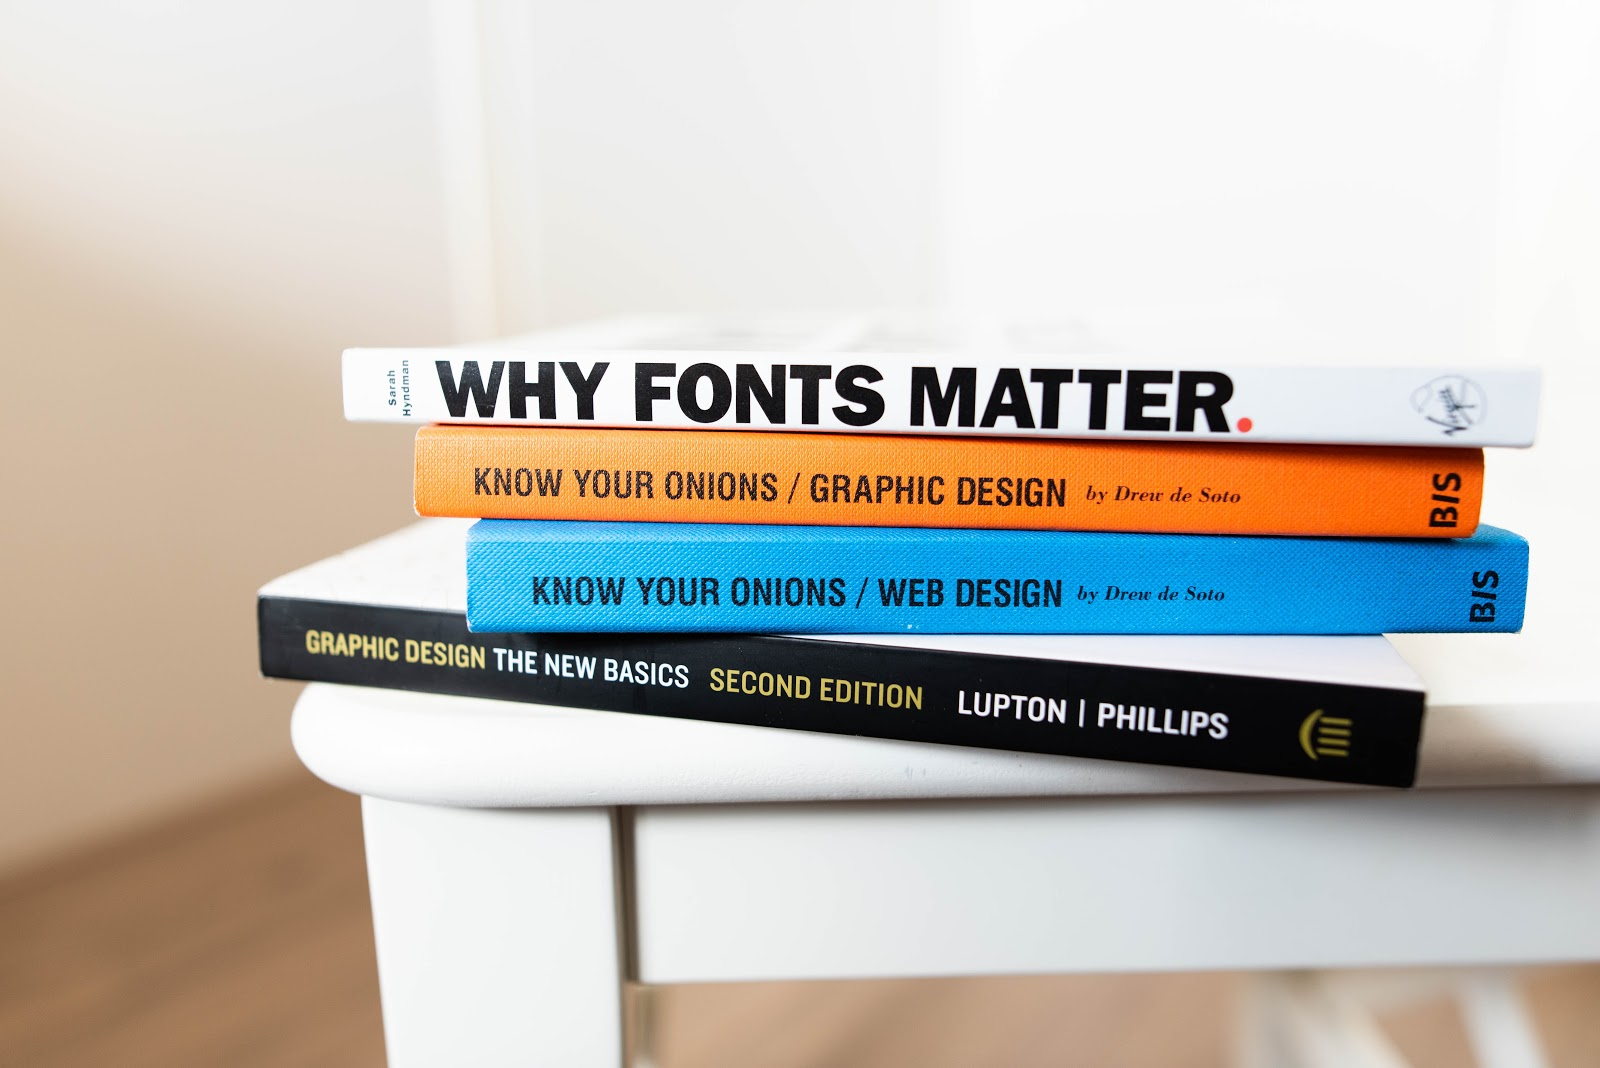 Books about fonts and graphic design stacked on top of a table